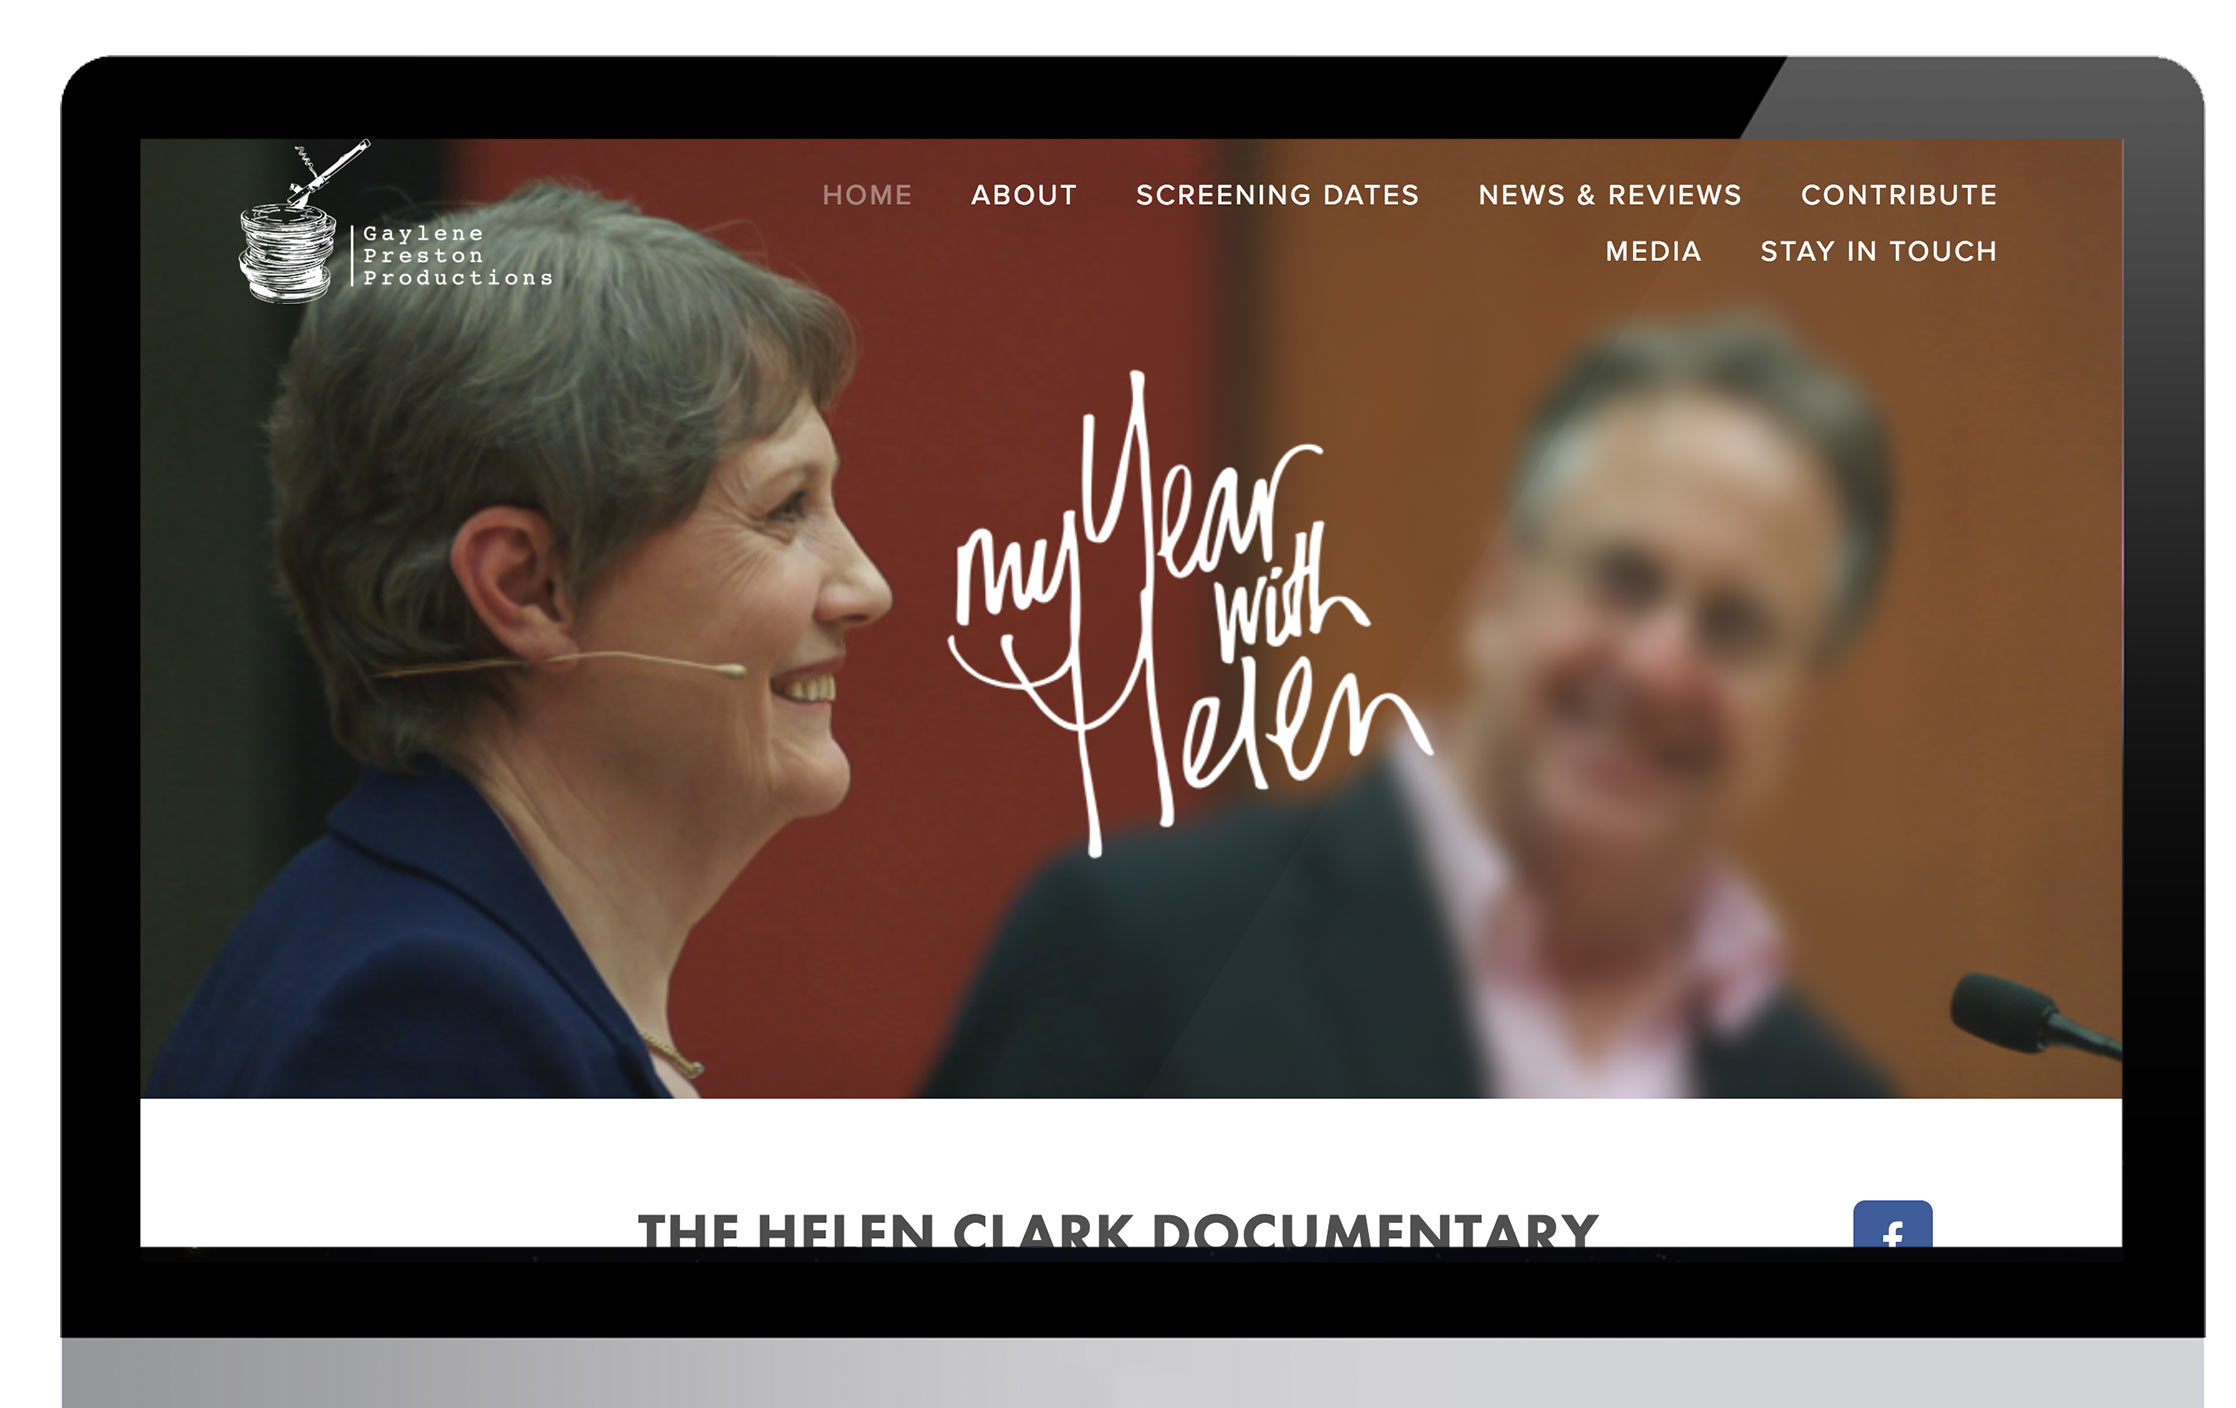 My Year with Helen - website